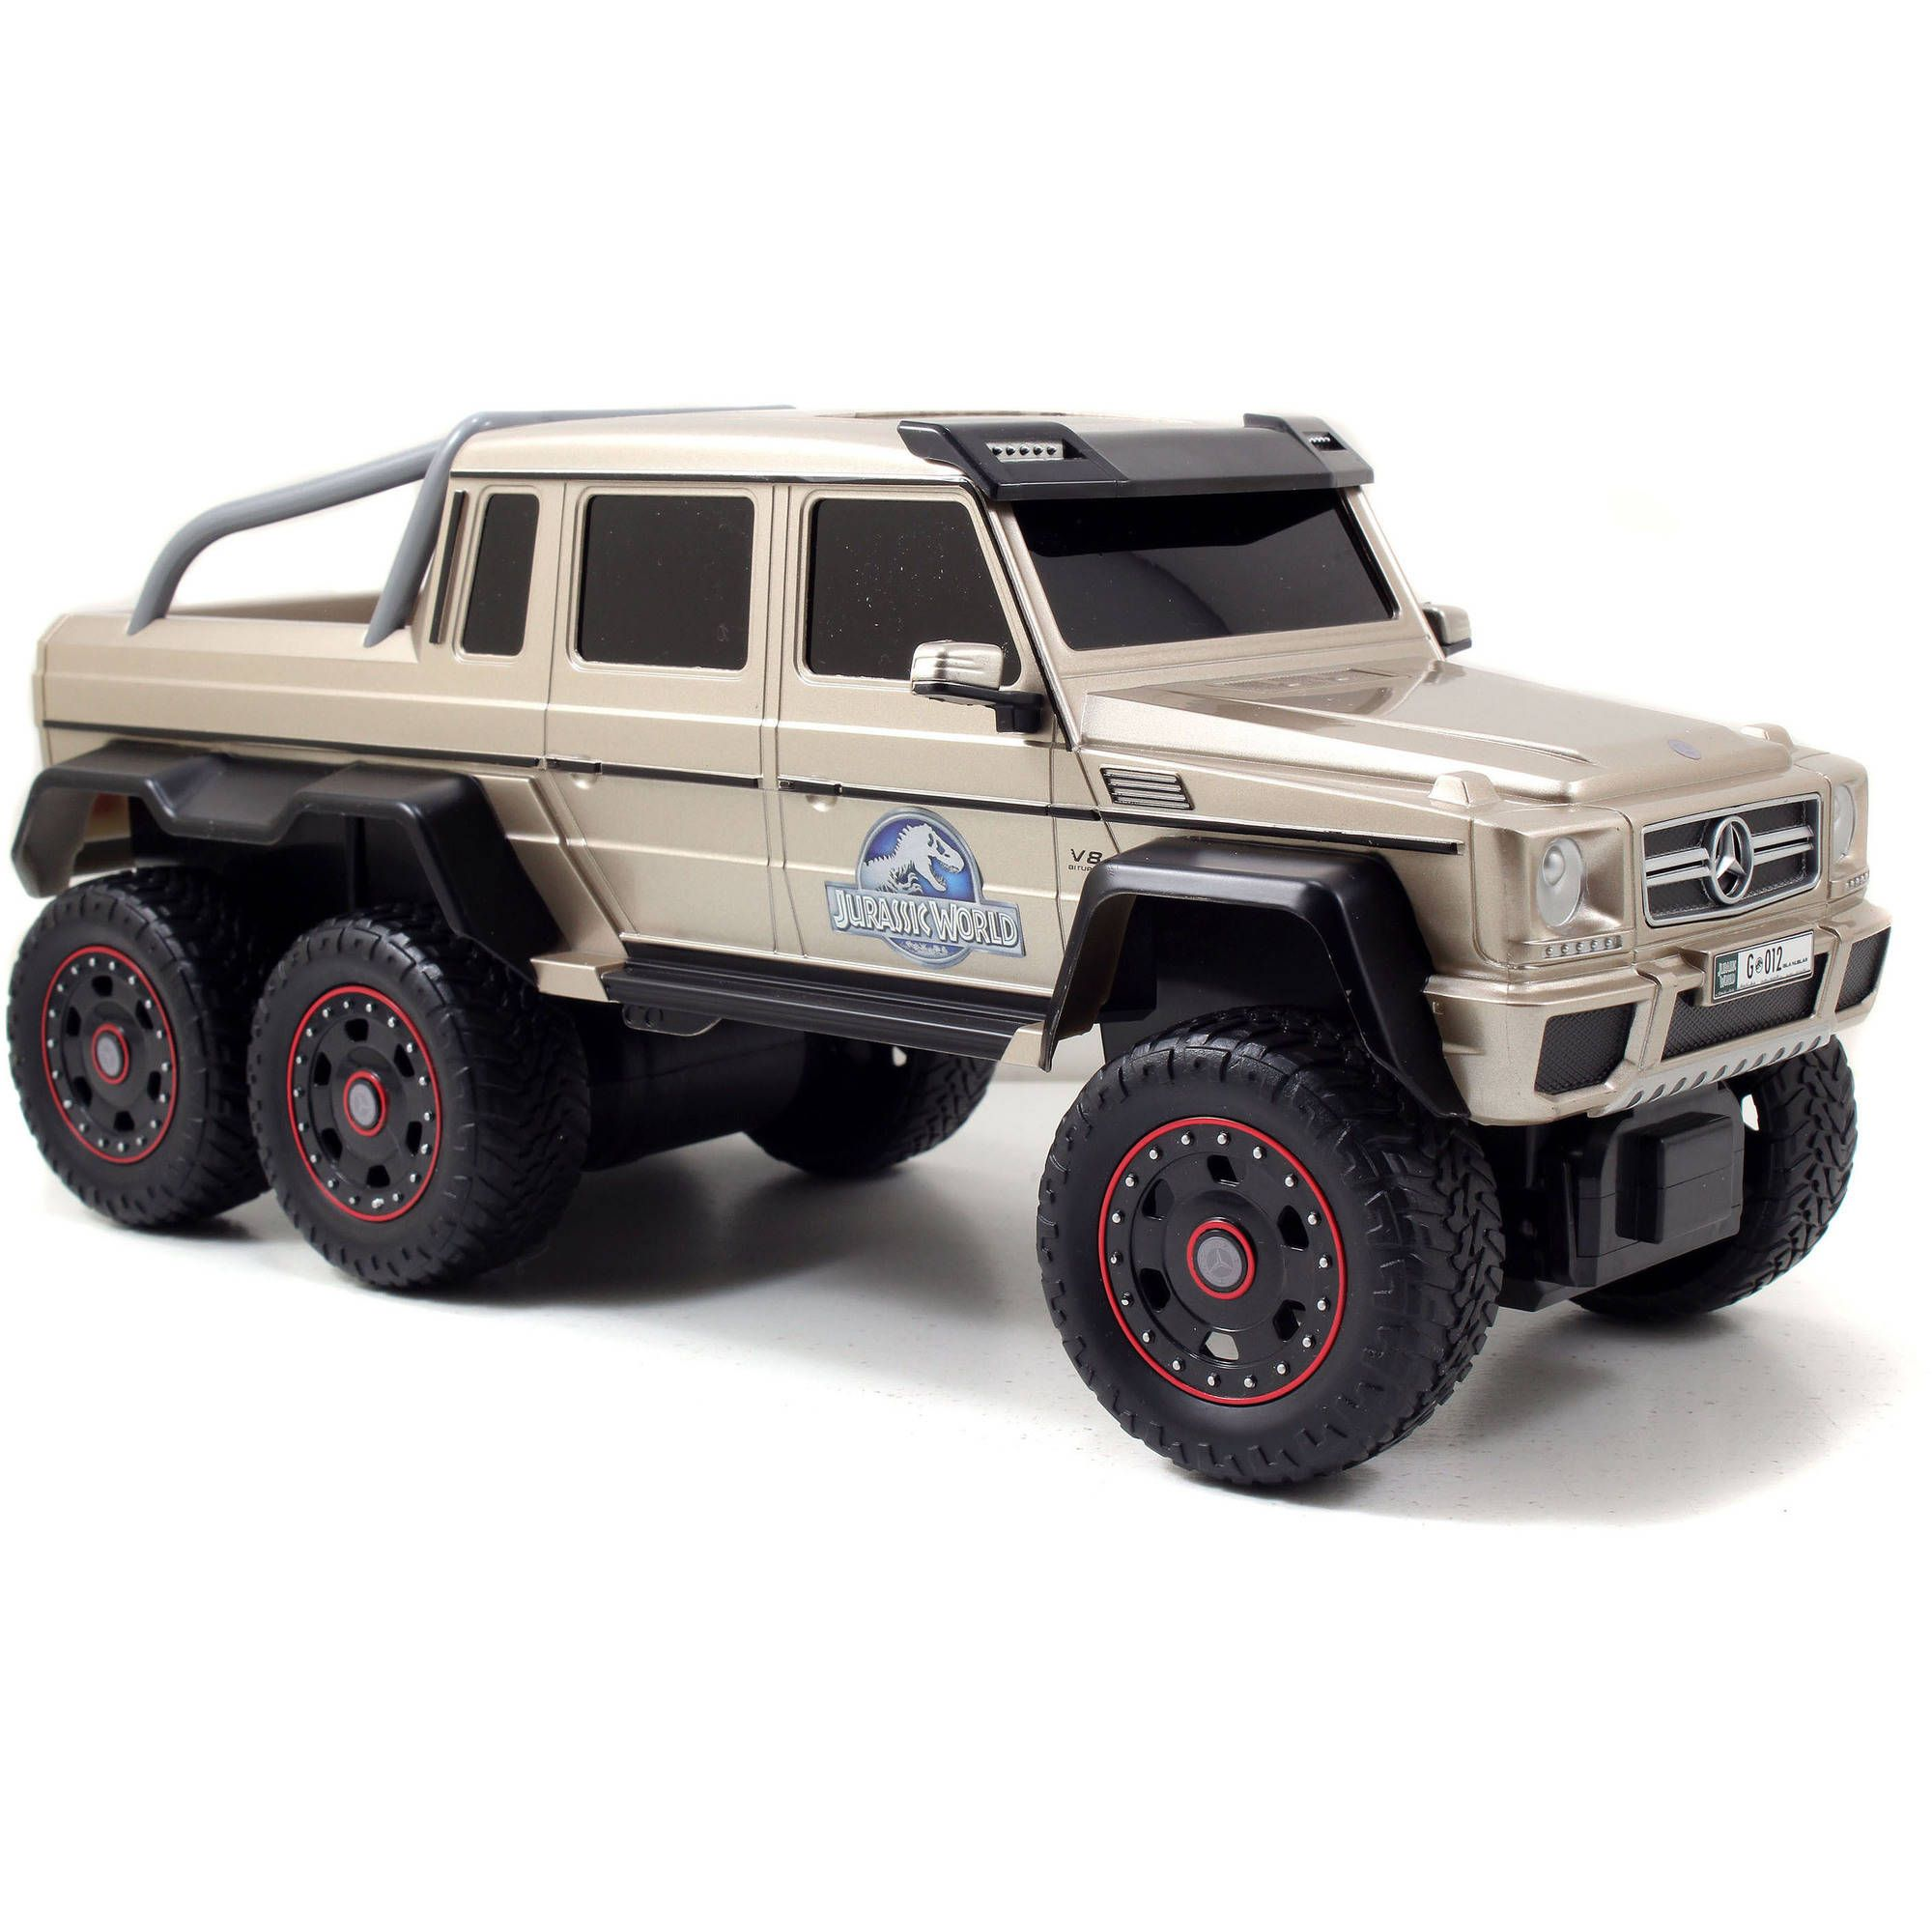 Jurassic World Mercedes-Benz G63 AMG 6X6 R/C Vehicle - Walmart com